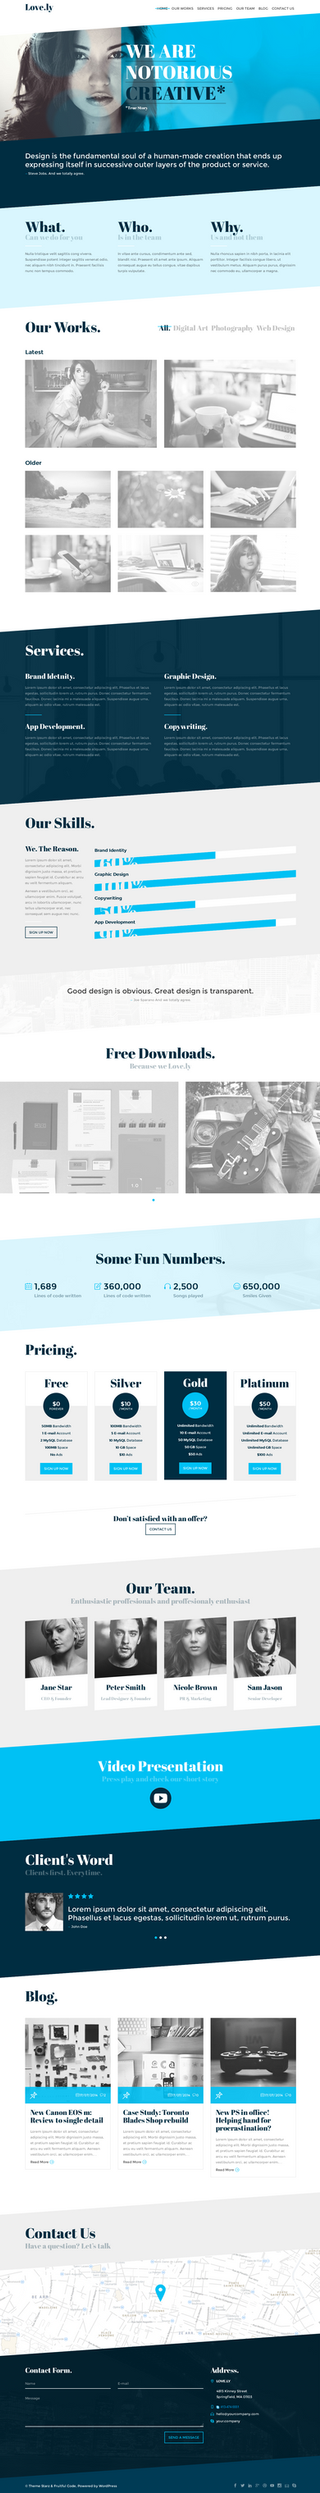 Lovely - Multi page WordPress theme 2014-08-05 09- by wpthemes